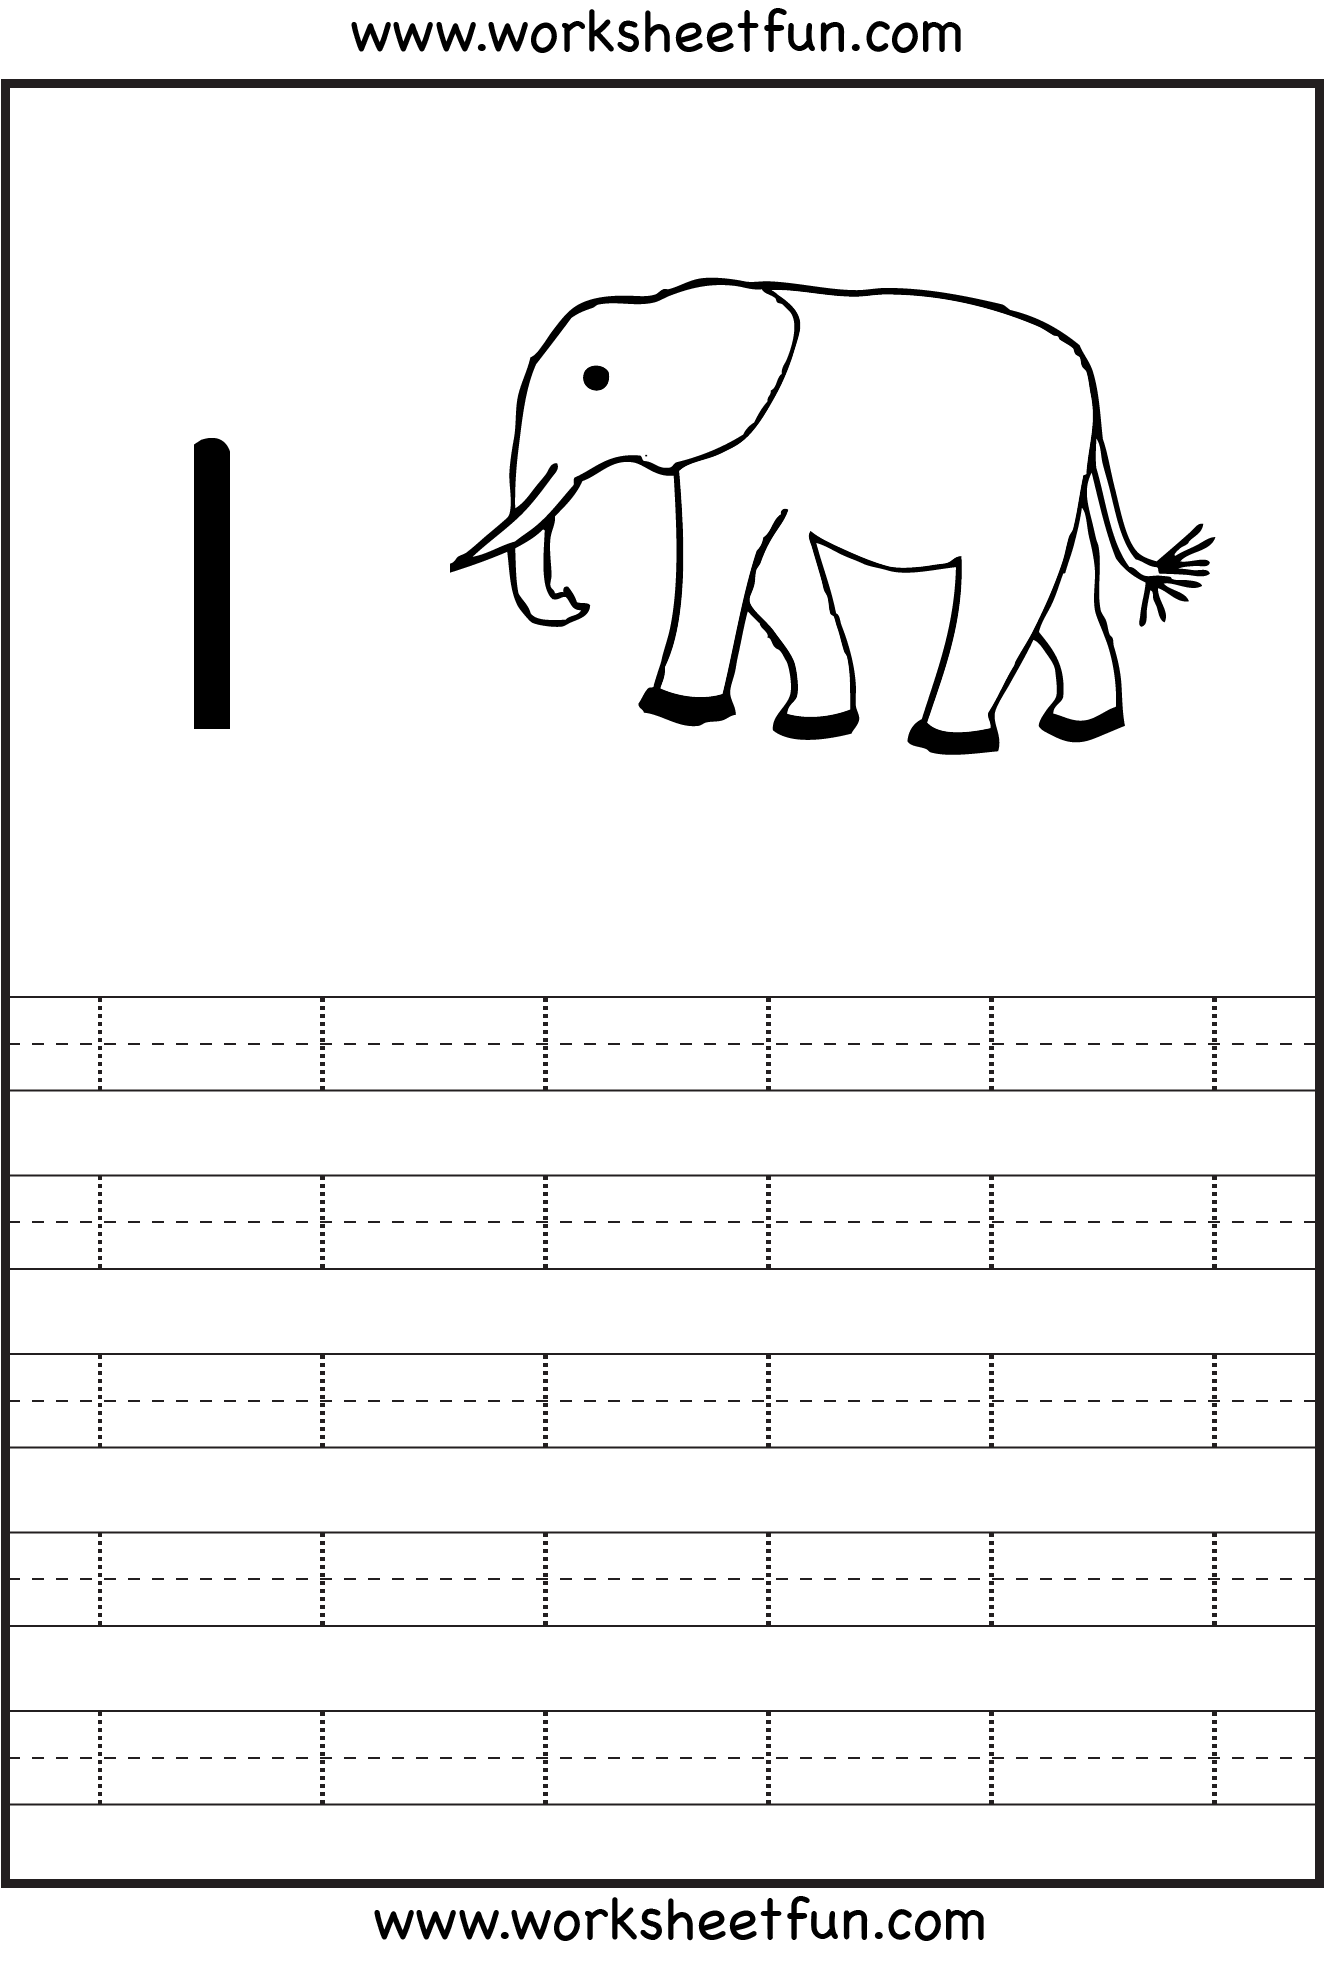 1000+ images about Number worksheets on Pinterest | Number Tracing ...